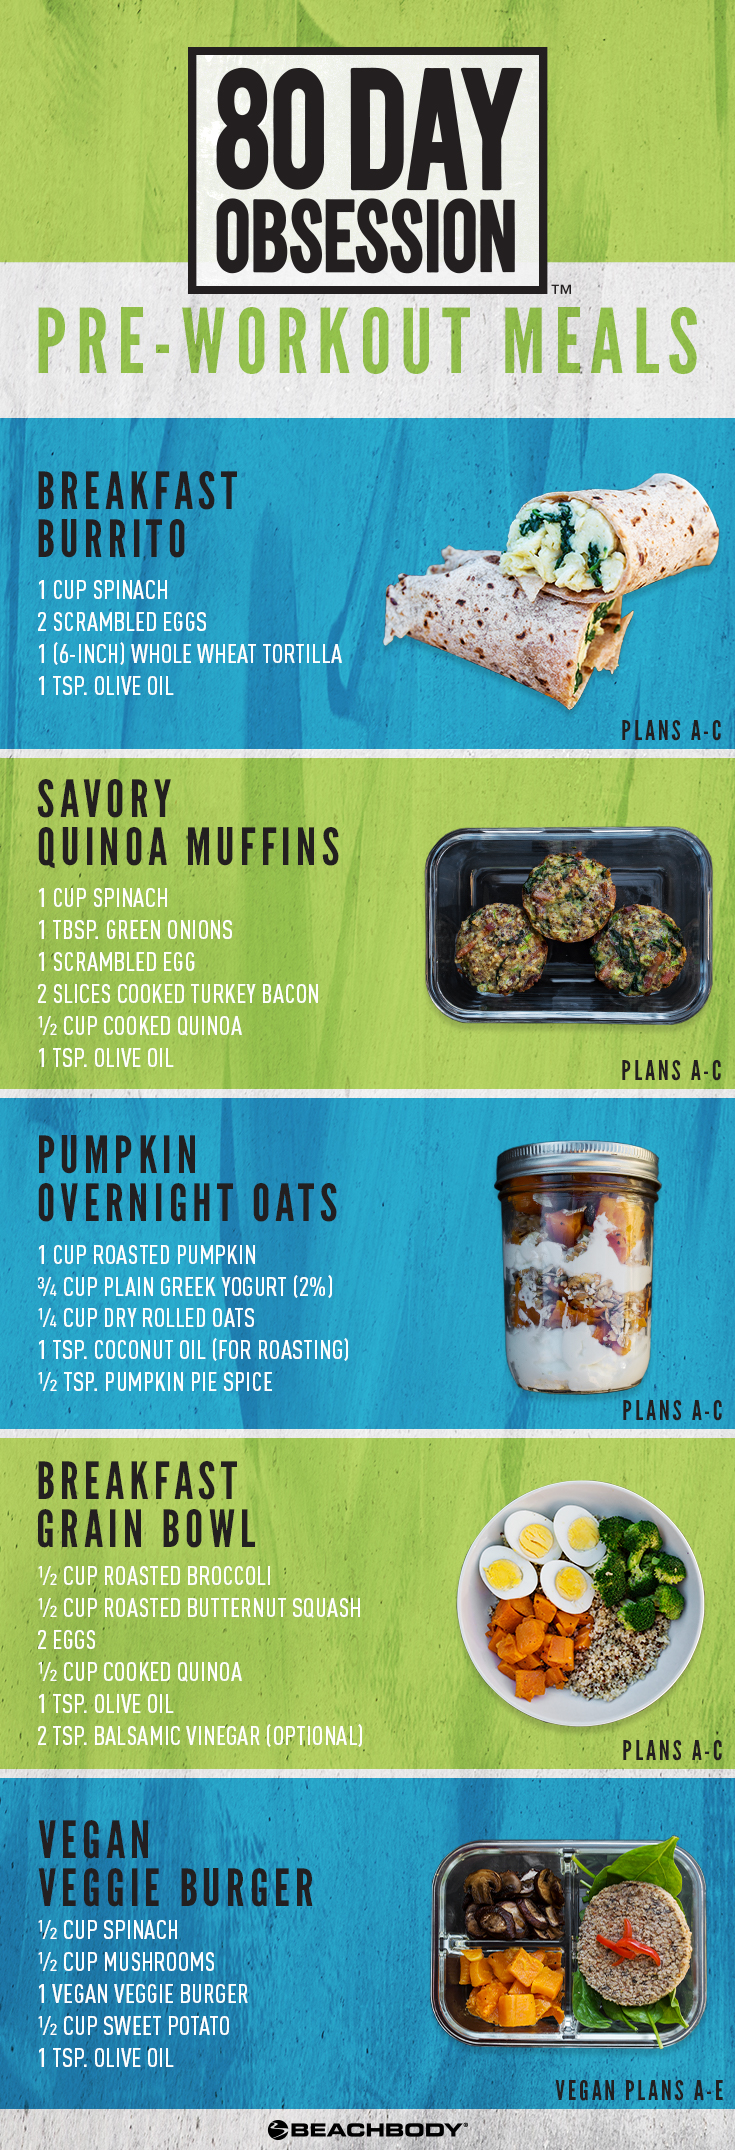 Pre-Workout Meals for 80-Day Obsession include a breakfast burrito, savory quinoa muffins, pumpkin overnight oats, breakfast grain bowl, and vegan veggie burger